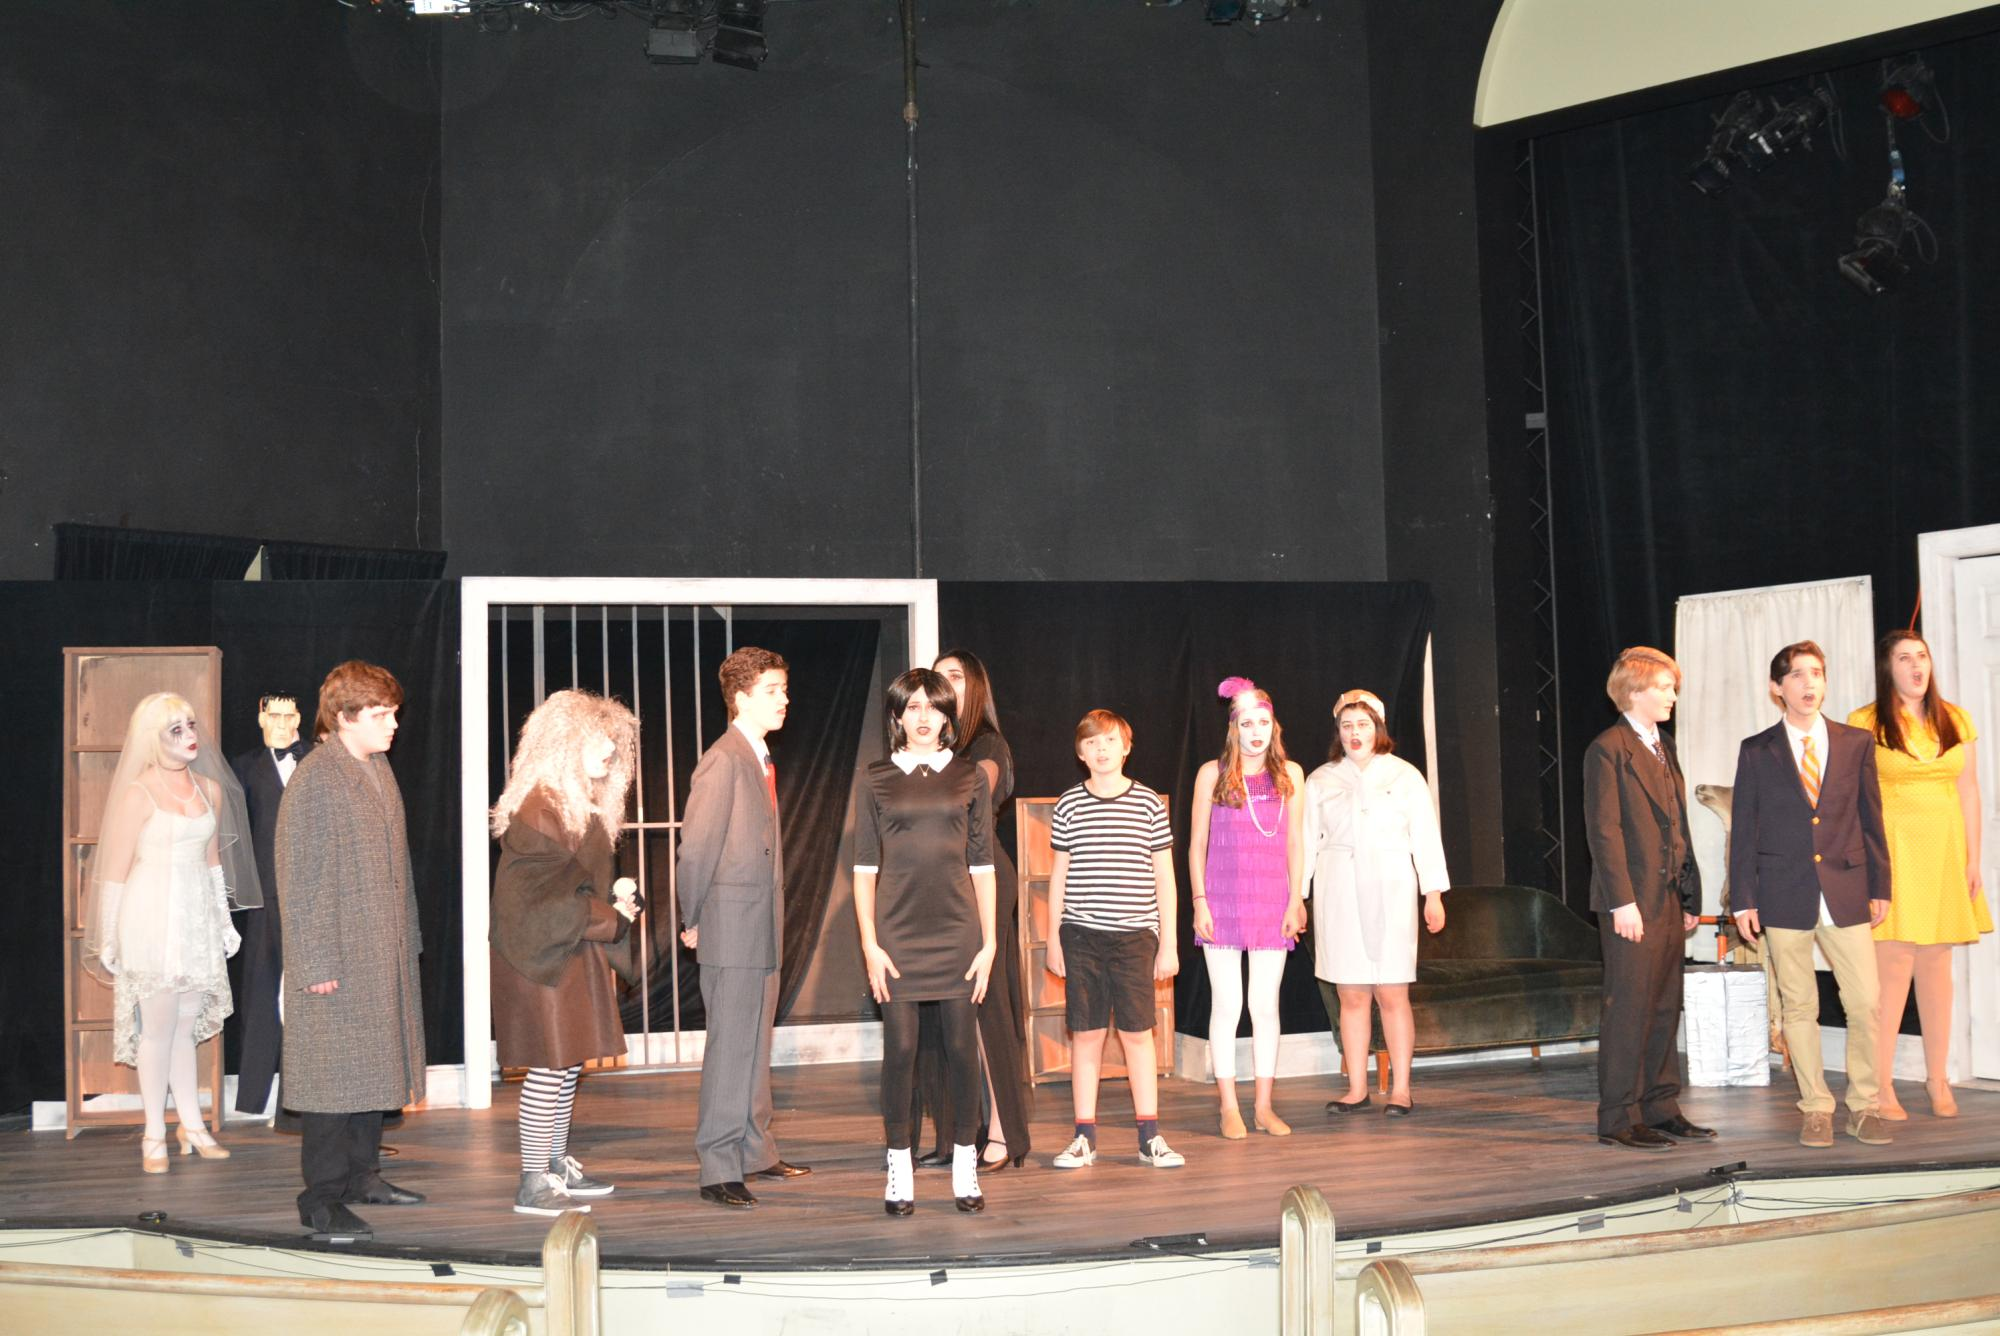 Our inaugural production... THE ADDAMS FAMILY!